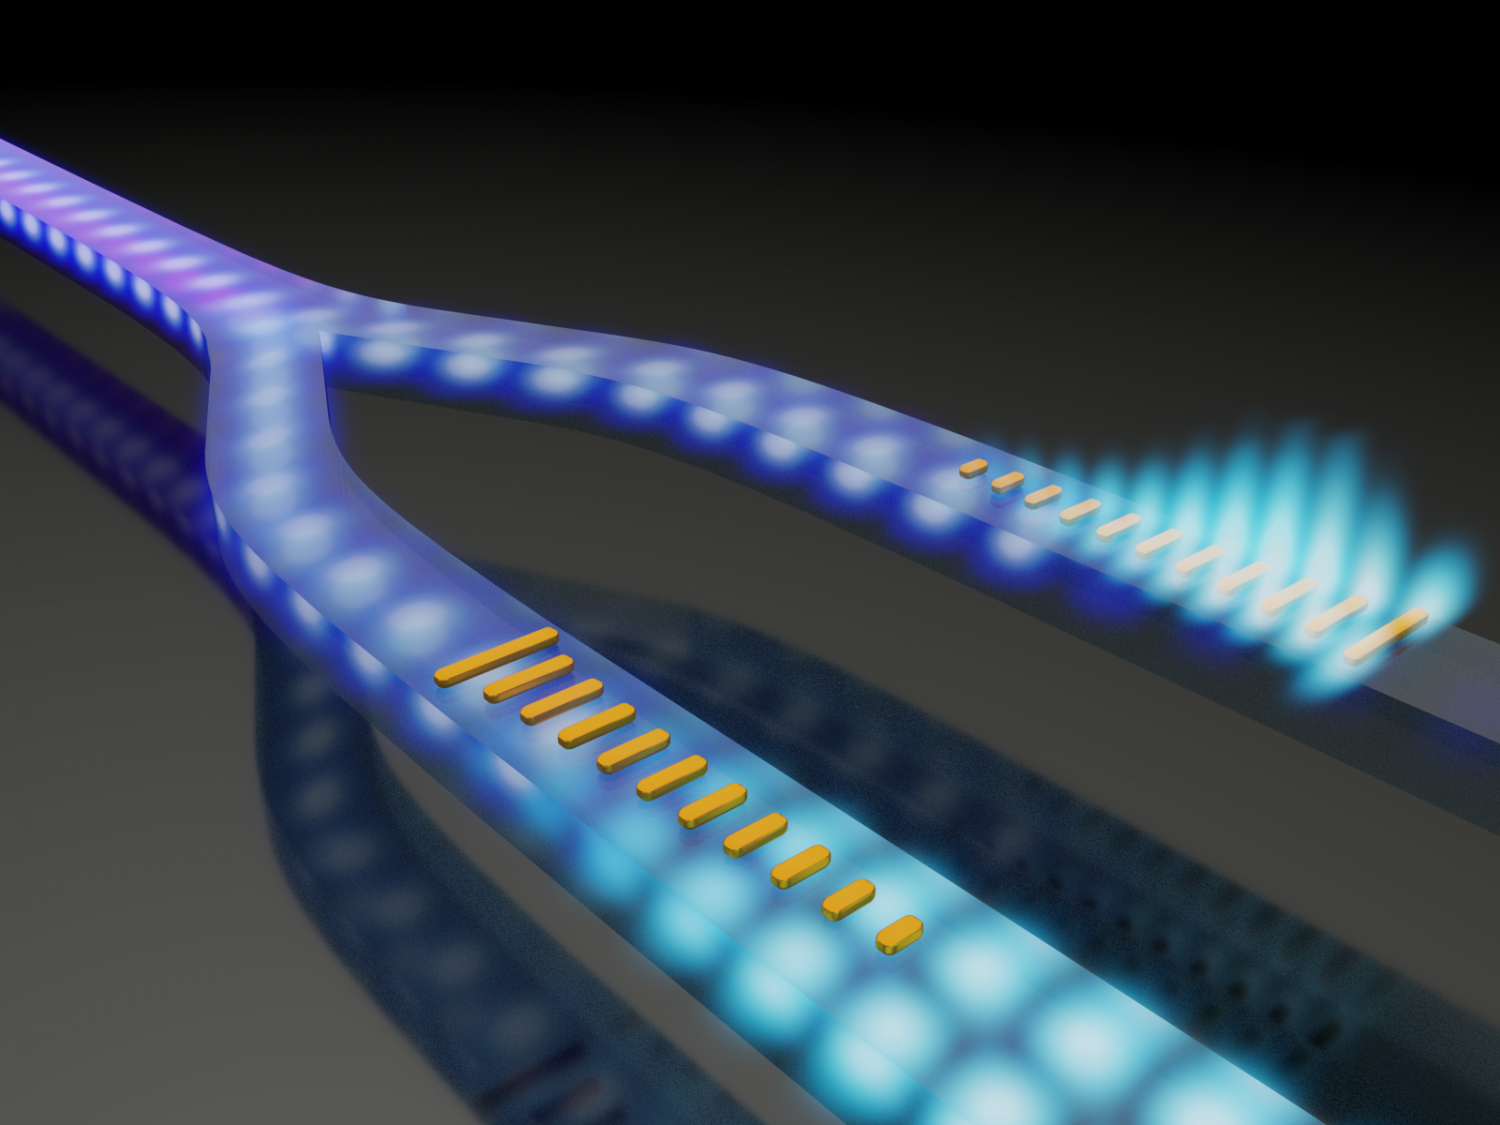 Engineers invent method to control light propagation in waveguides